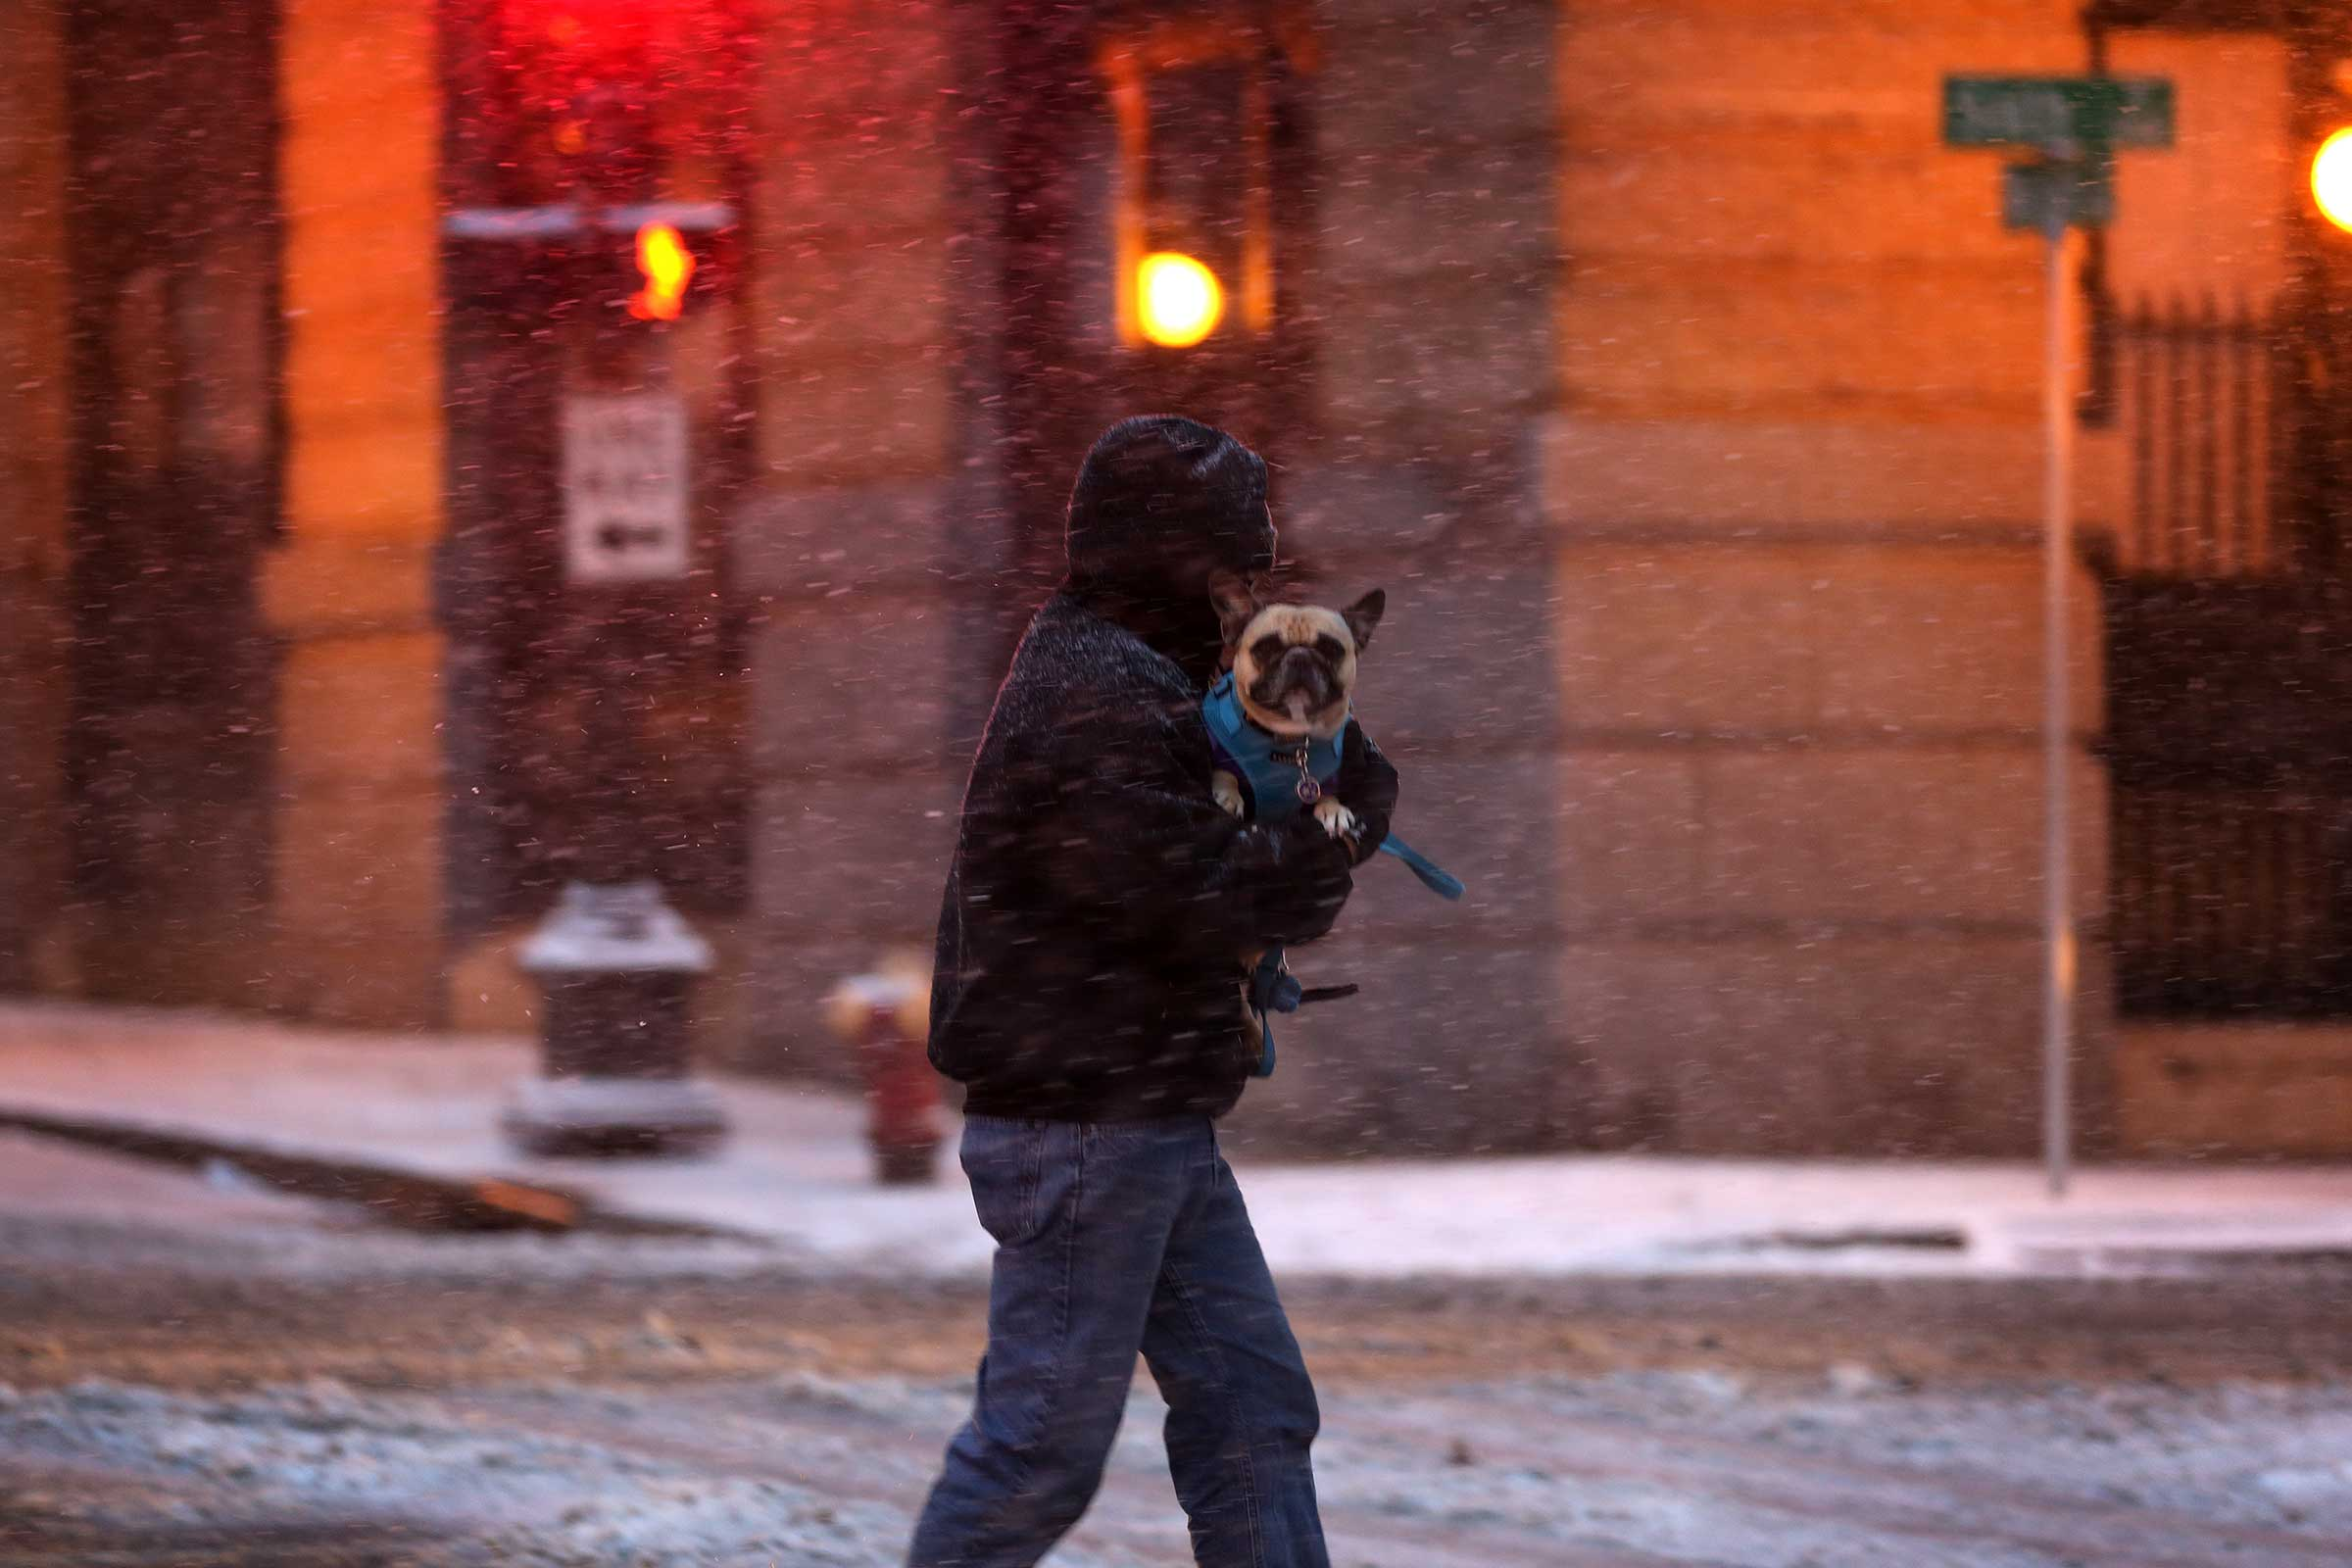 A man holds his dog as he rushes across the street in downtown St. Paul, Minn., during the first snowstorm of the season on, Nov. 10, 2014.